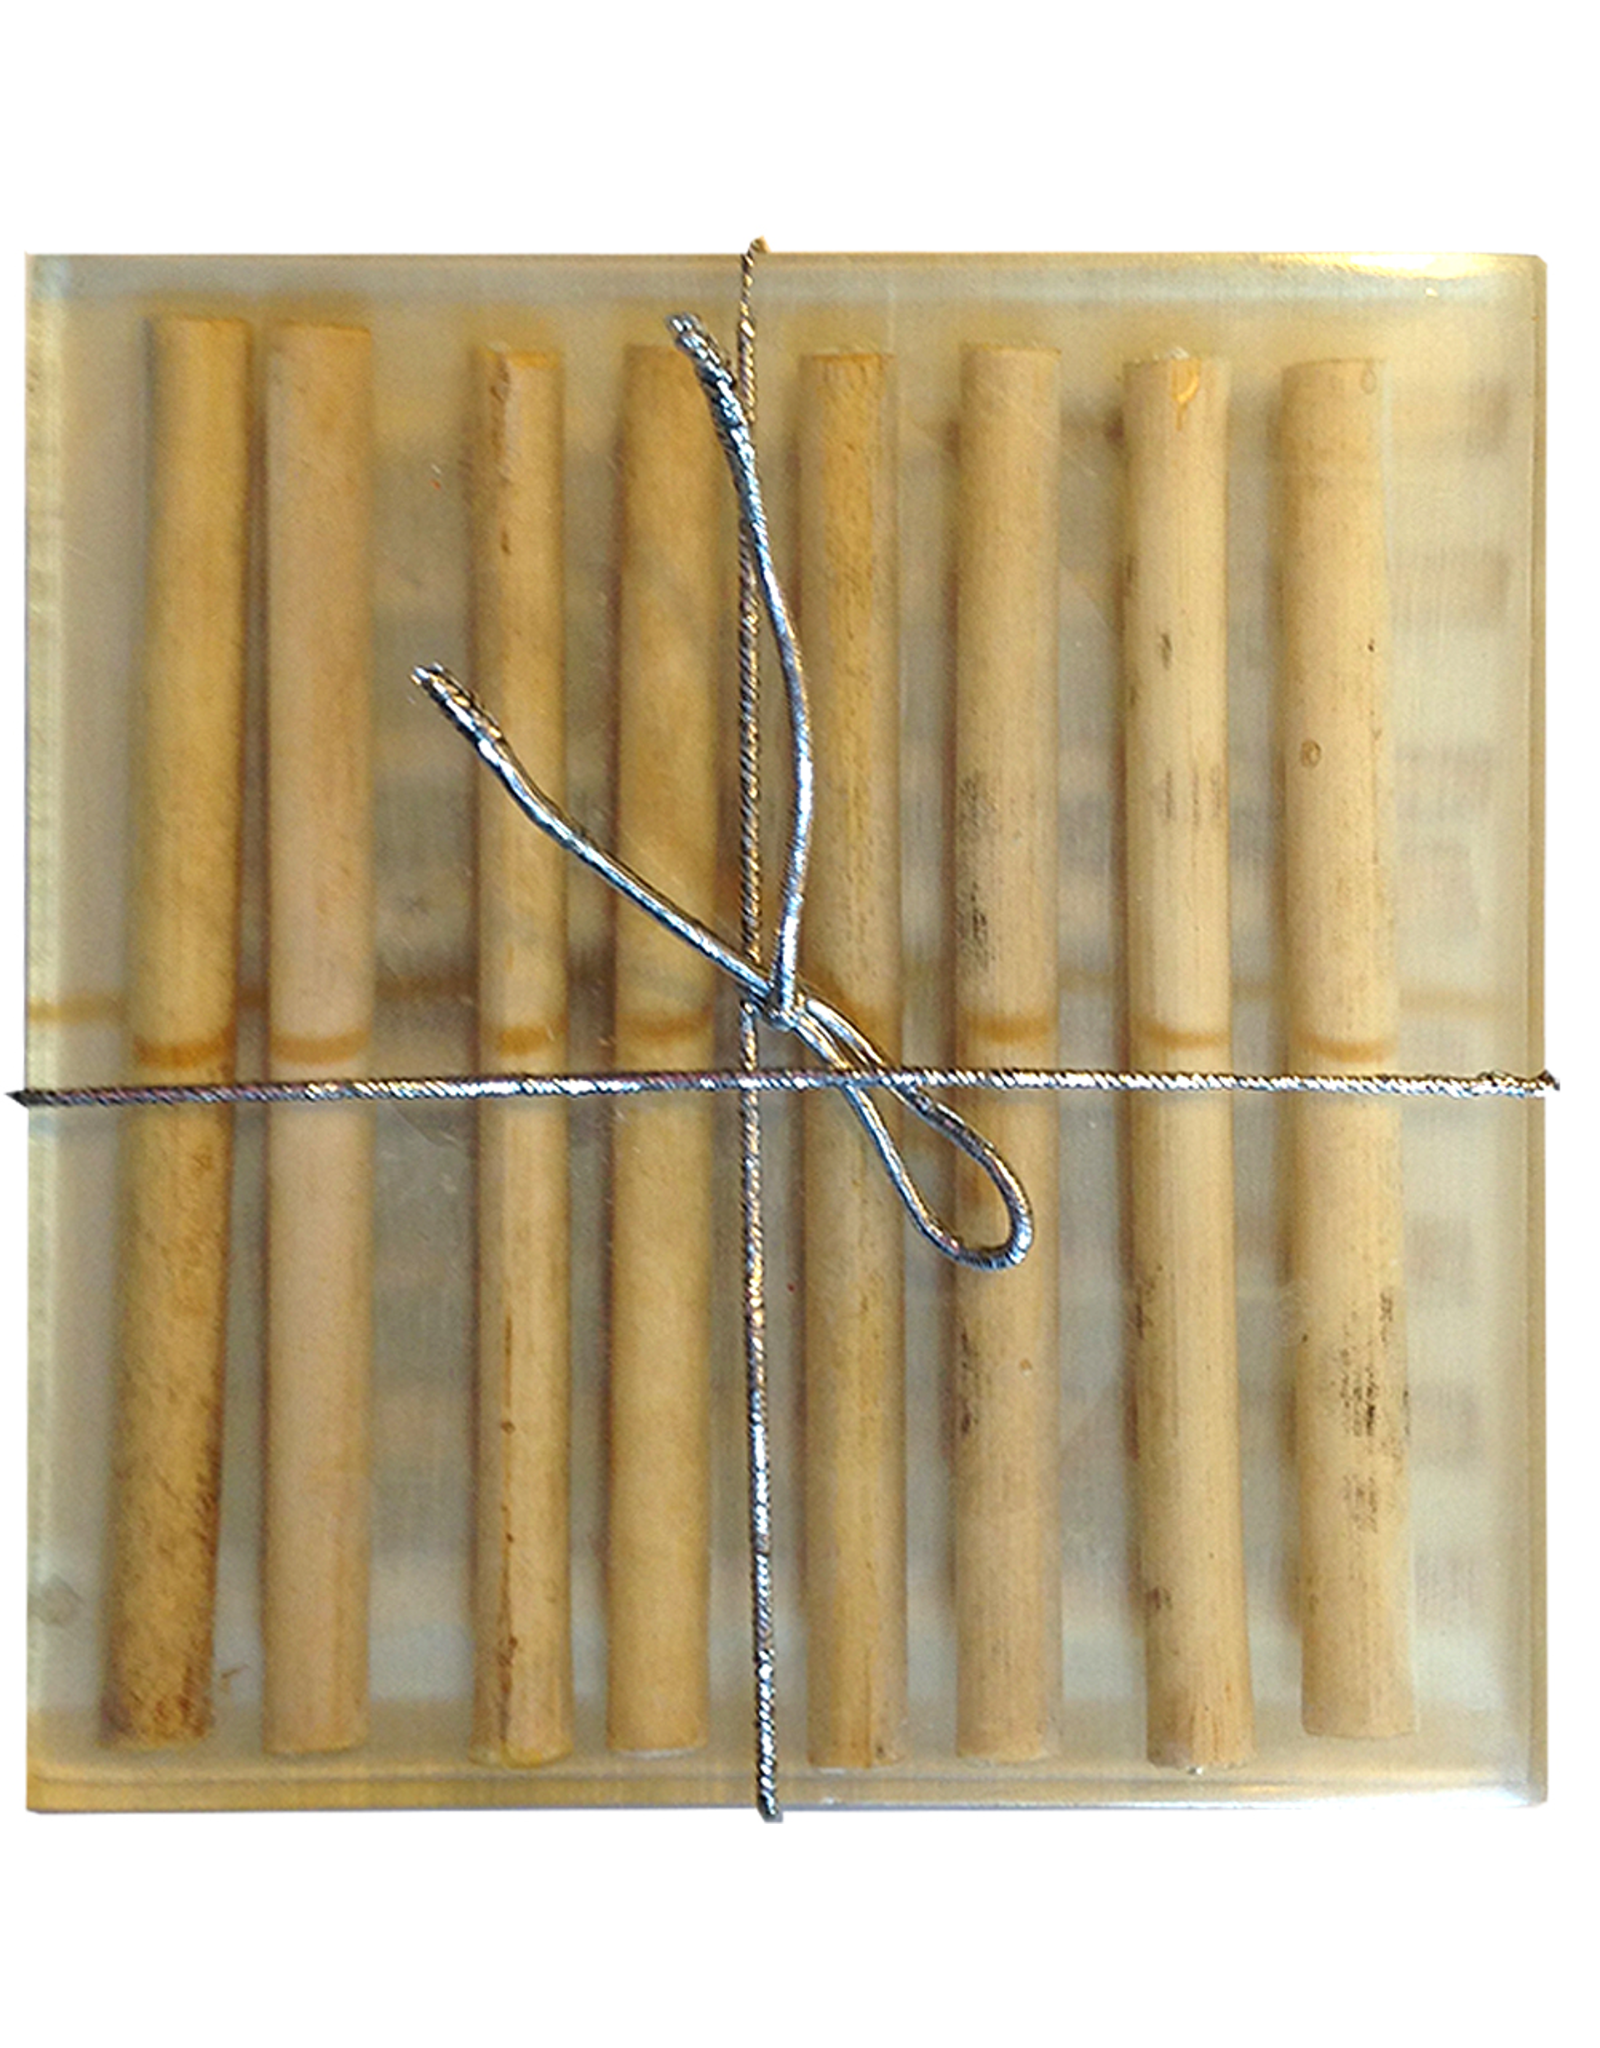 Digs Bamboo Sticks Coasters Set of 4 Bamboo Sticks in Polyresin